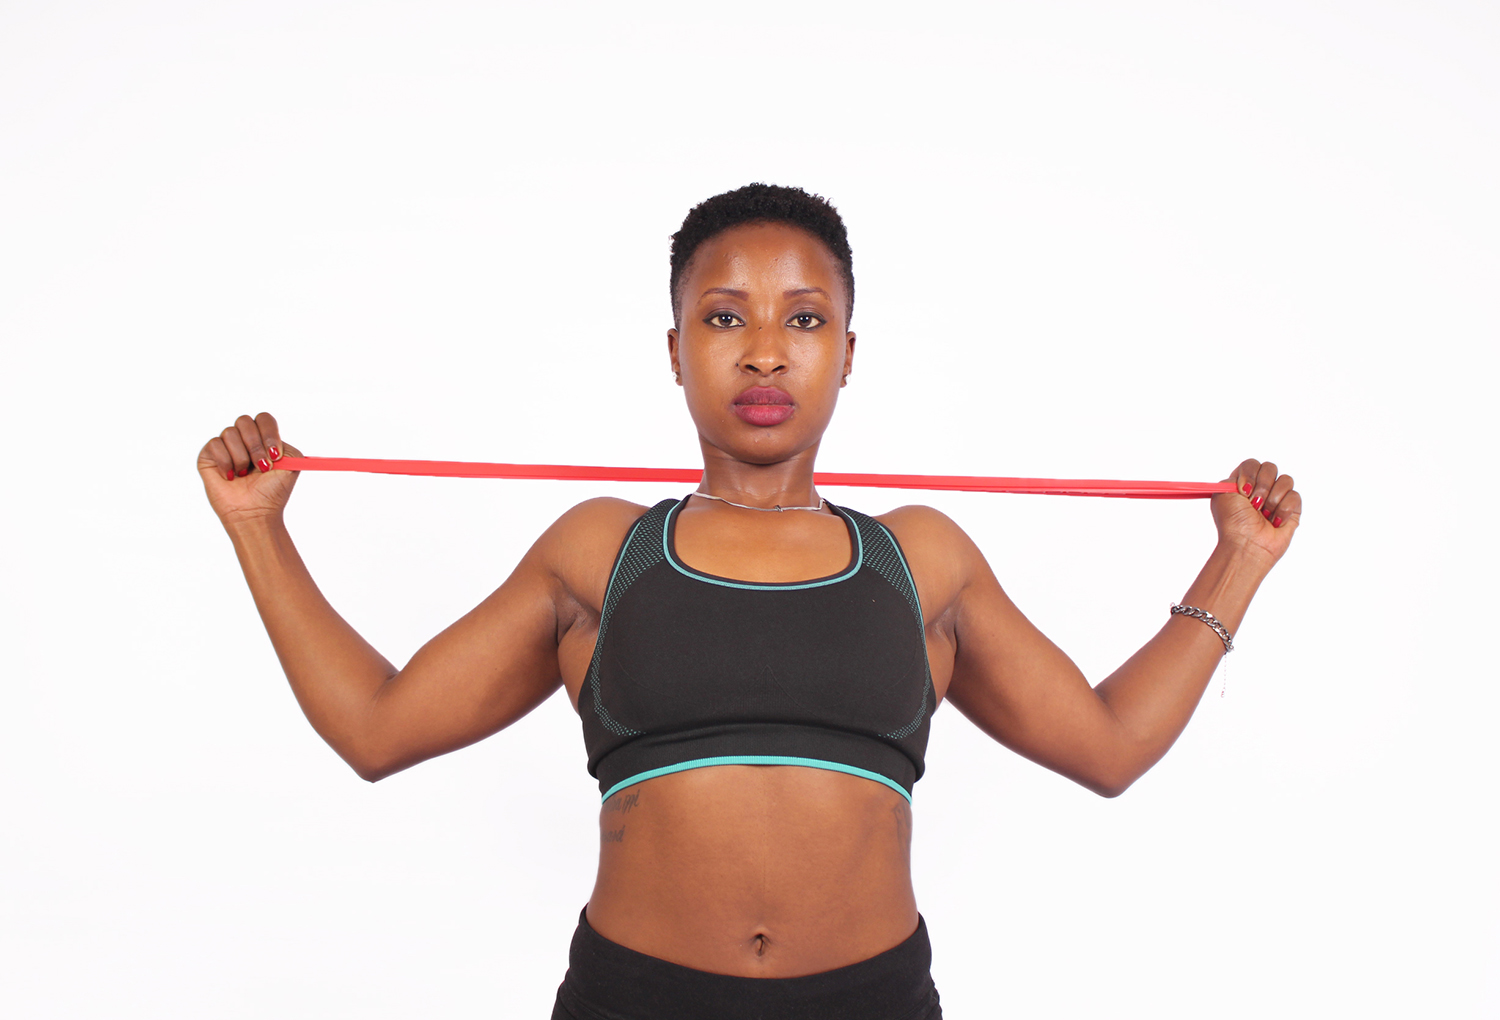 Strong woman exercising with resistance bands